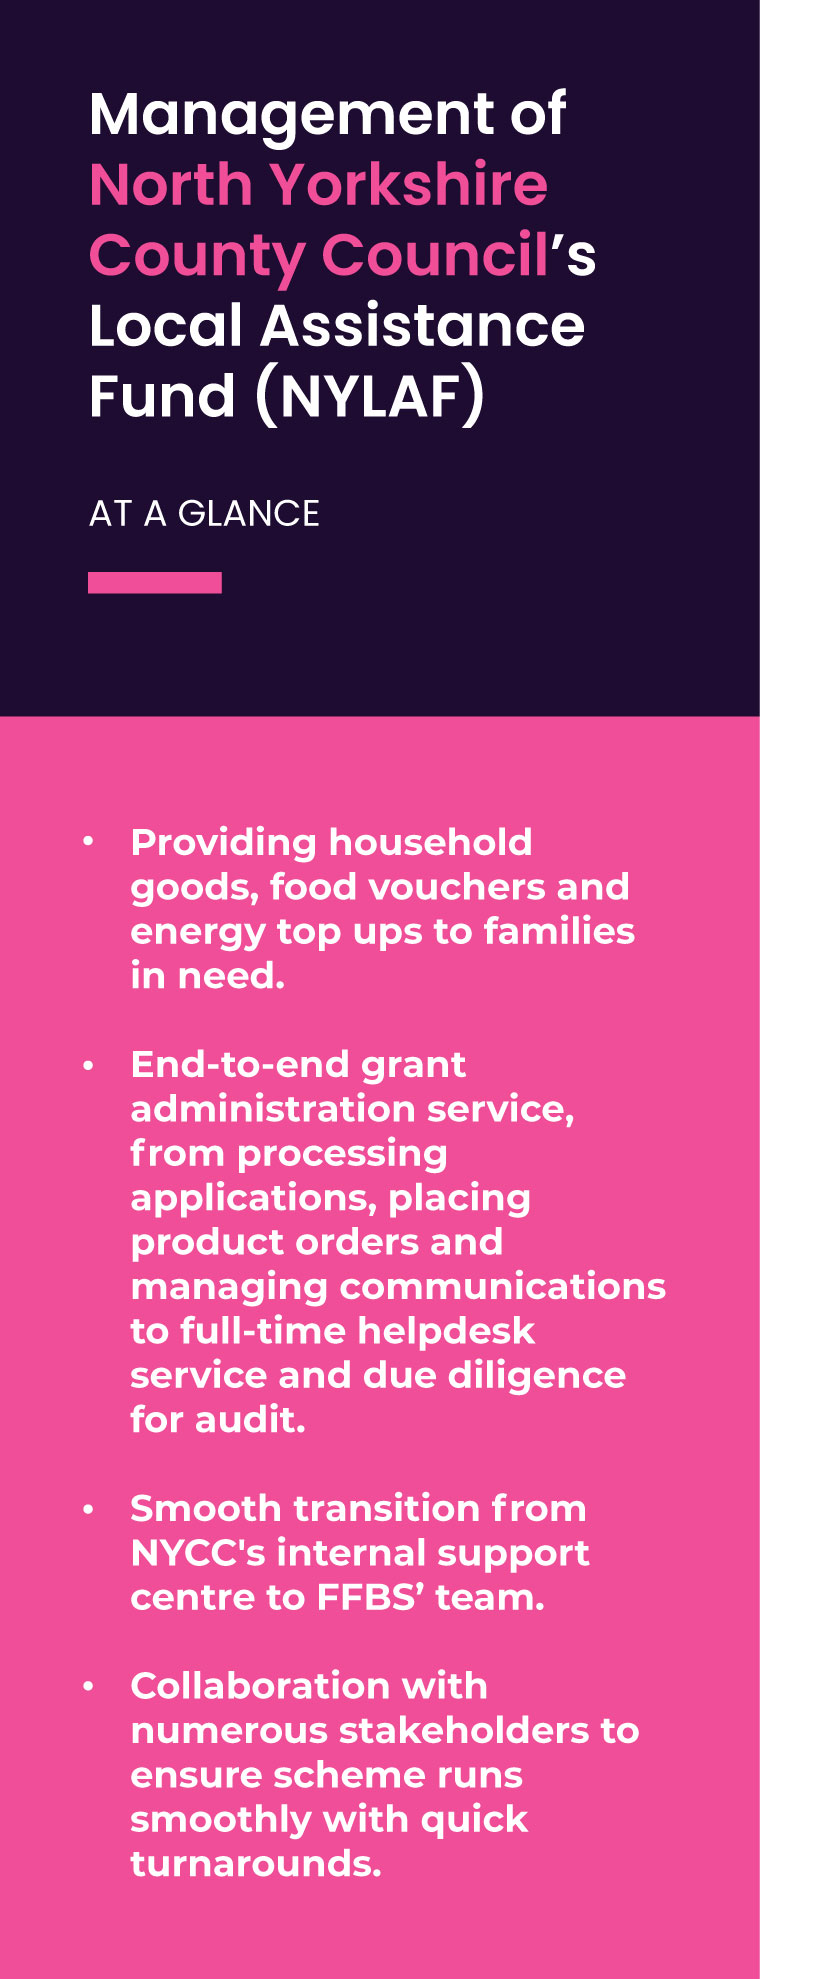 Management of North Yorkshire County Council's Local Assistance Fund (NYLAF)  Providing household goods, food vouchers and energy top ups to families in need.  End-to-end grant administration service, from processing applications, placing product orders and managing communications to full-time helpdesk service and due diligence for audit.  Smooth transition from NYCC's internal support centre to FFBS' team.  Collaboration with numerous stakeholders to ensure scheme runs smoothly with quick turnarounds.